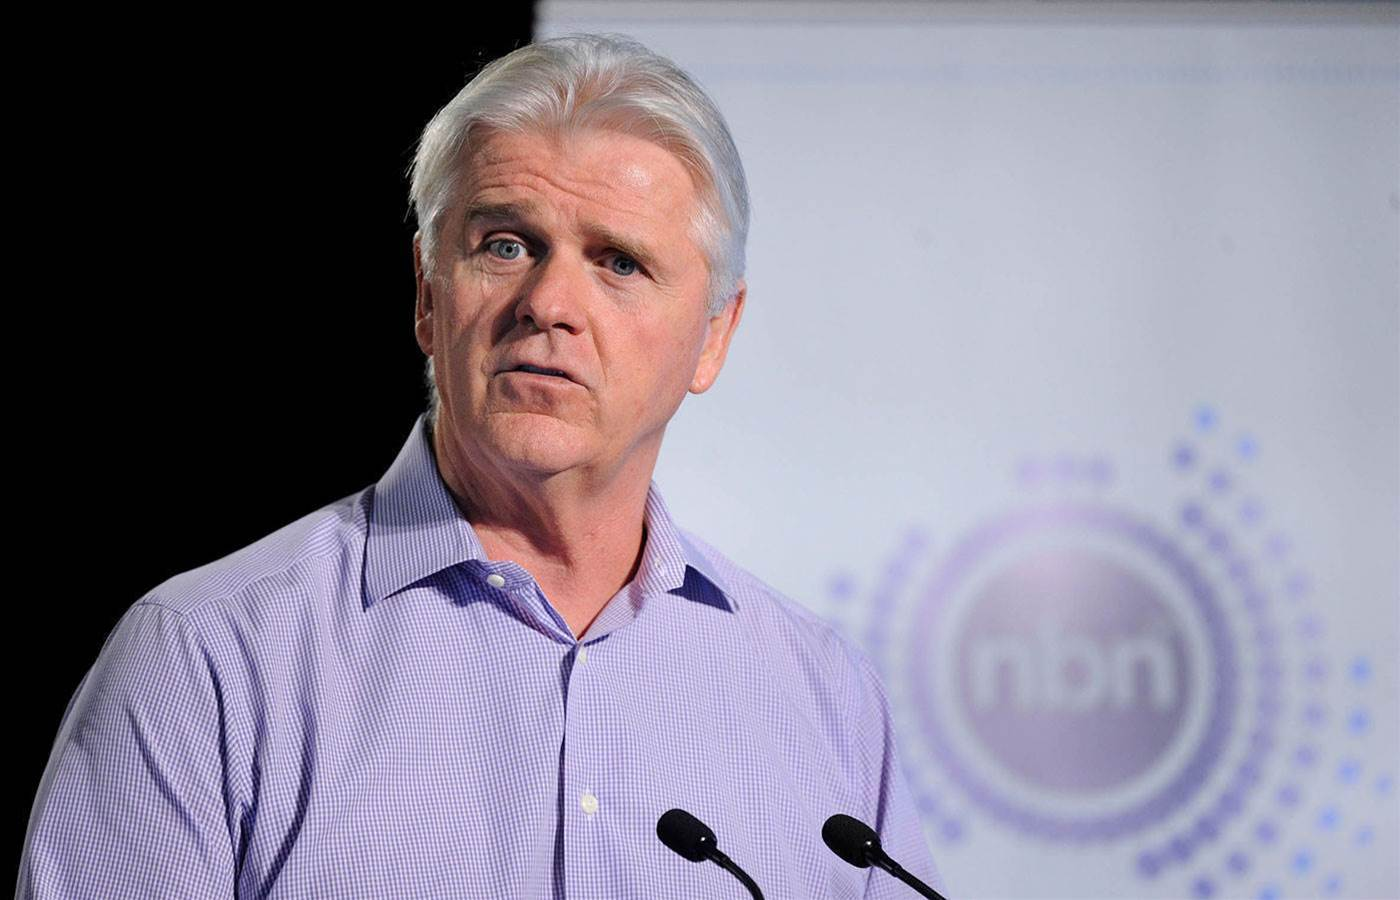 NBN Co chief executive Bill Morrow to exit this year